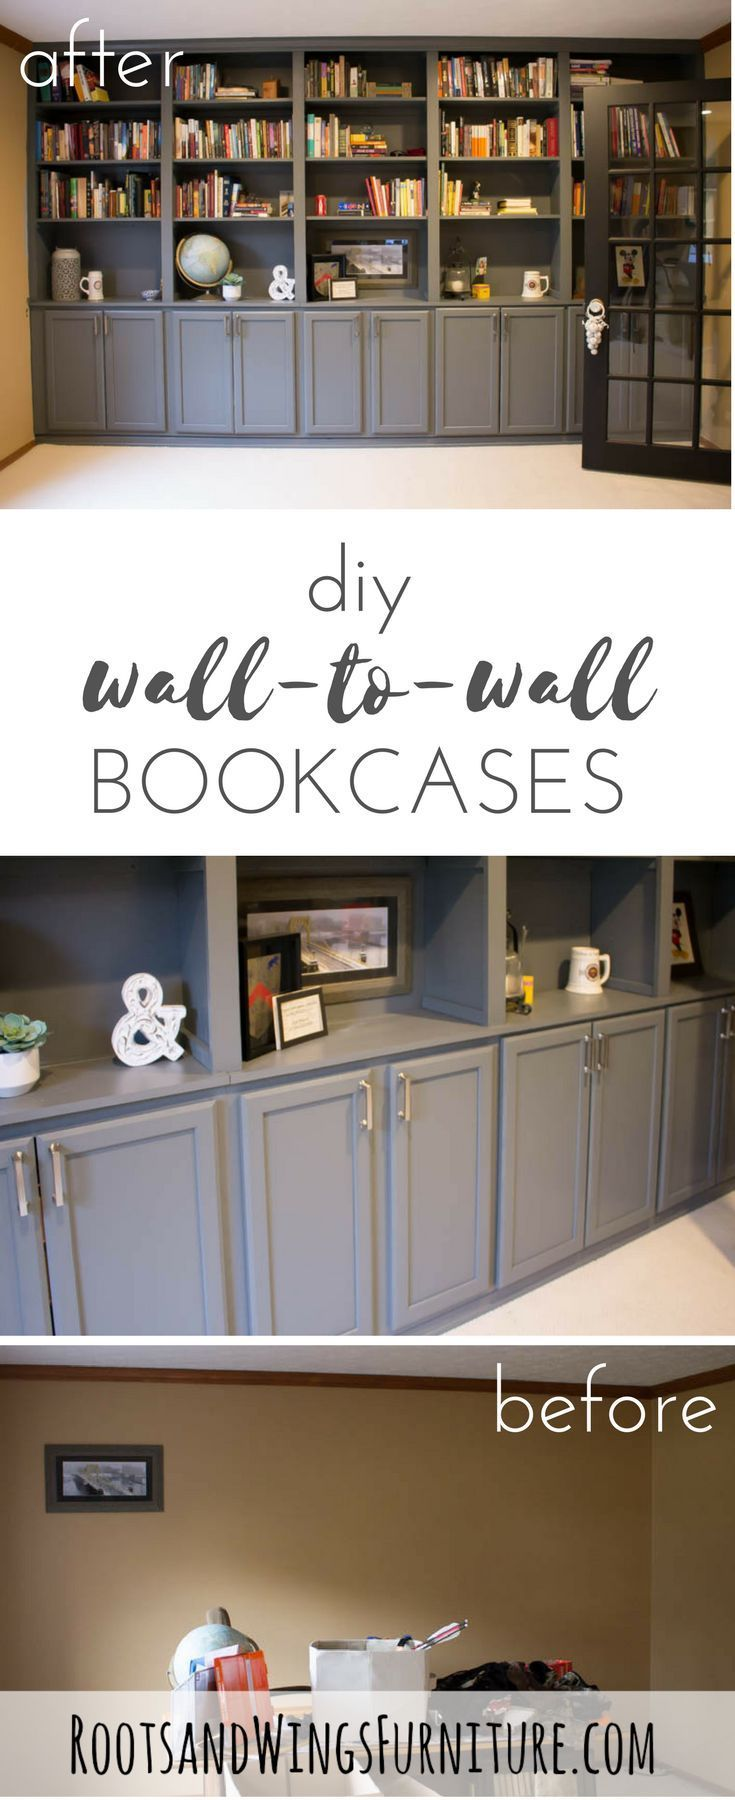 Diy Wall To Wall Book Cases Use Kitchen Cabinets As A Base And Build A Whole Wall Of Built Ins For Y Bookshelves Diy Home Office Storage Used Kitchen Cabinets